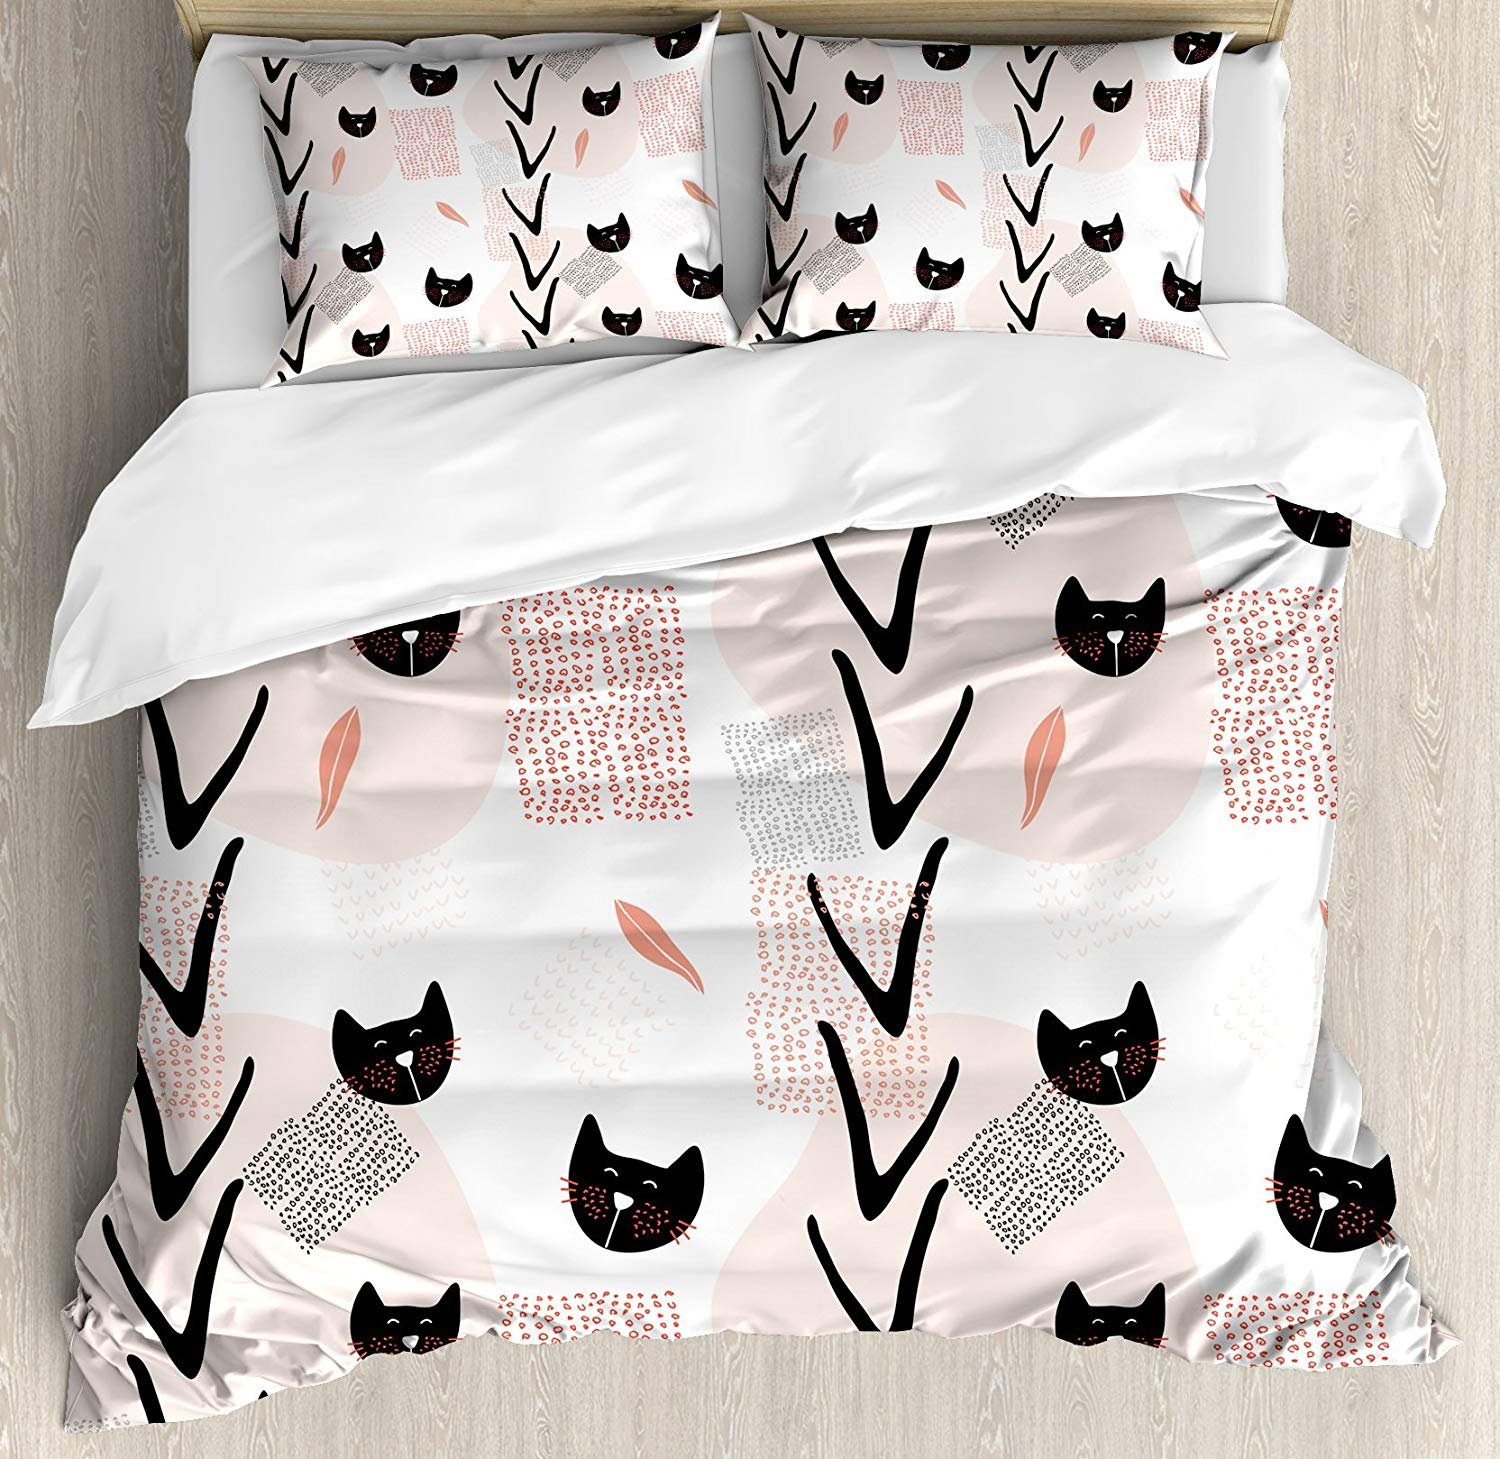 Twin XL Extra Long Bedding Set, Modern Duvet Cover Set, Cute Cat Faces with Dotted Whiskers Kittens Animals Kids Nursery Theme, Cosy House Collection 4 Piece Bedding Sets by Prime Leader